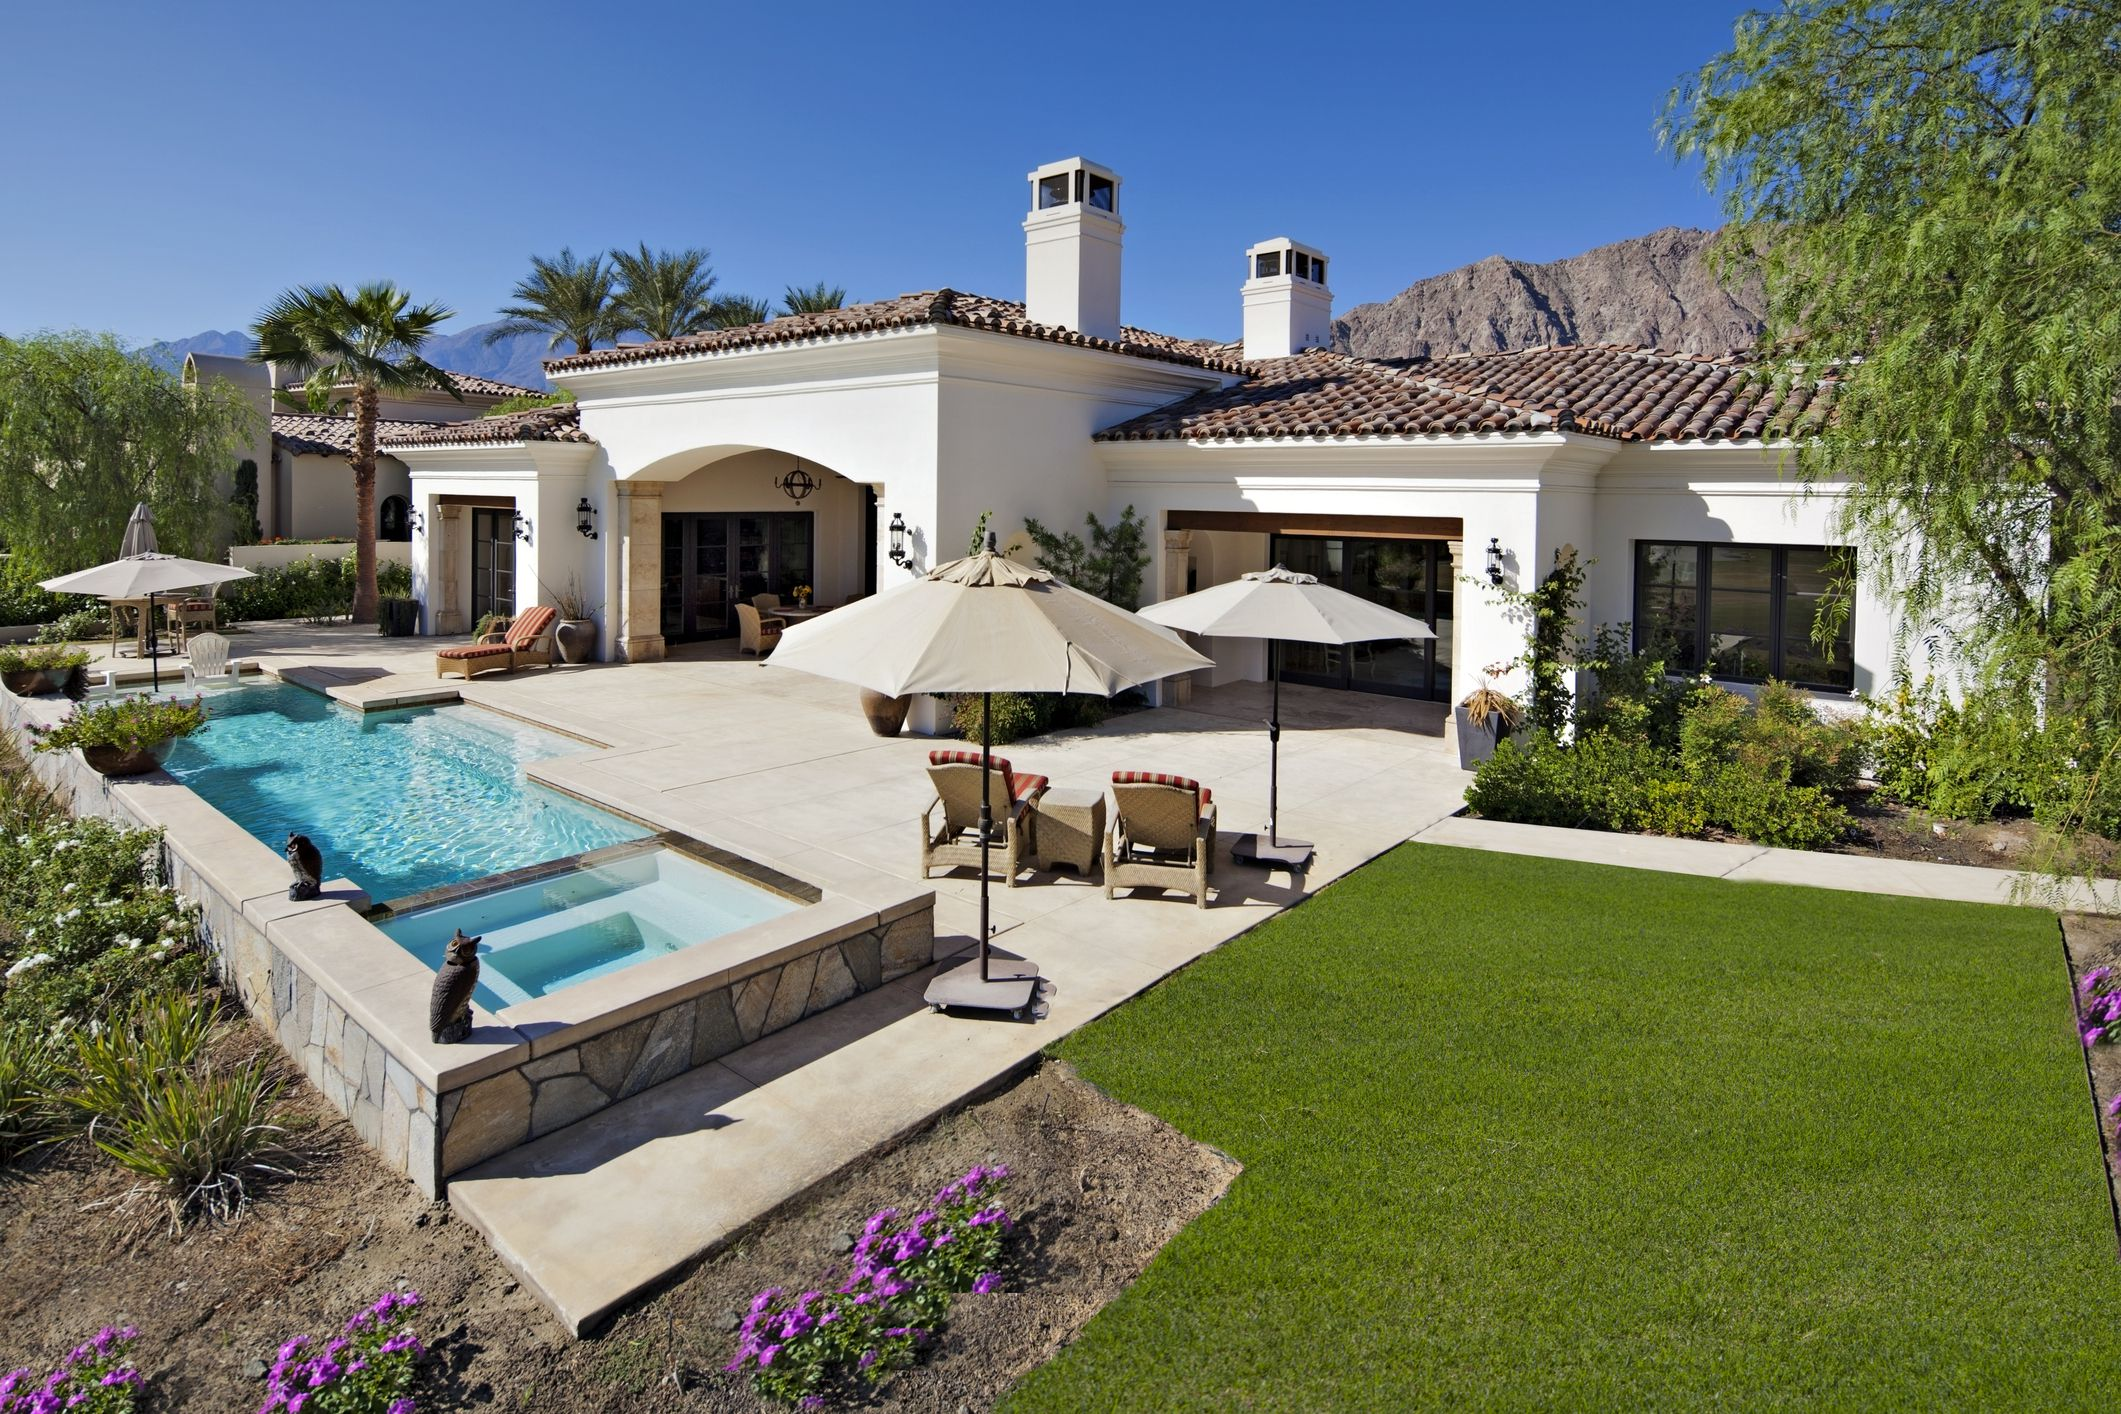 How To Plan A Grid Layout For An Outdoor Tile Patio